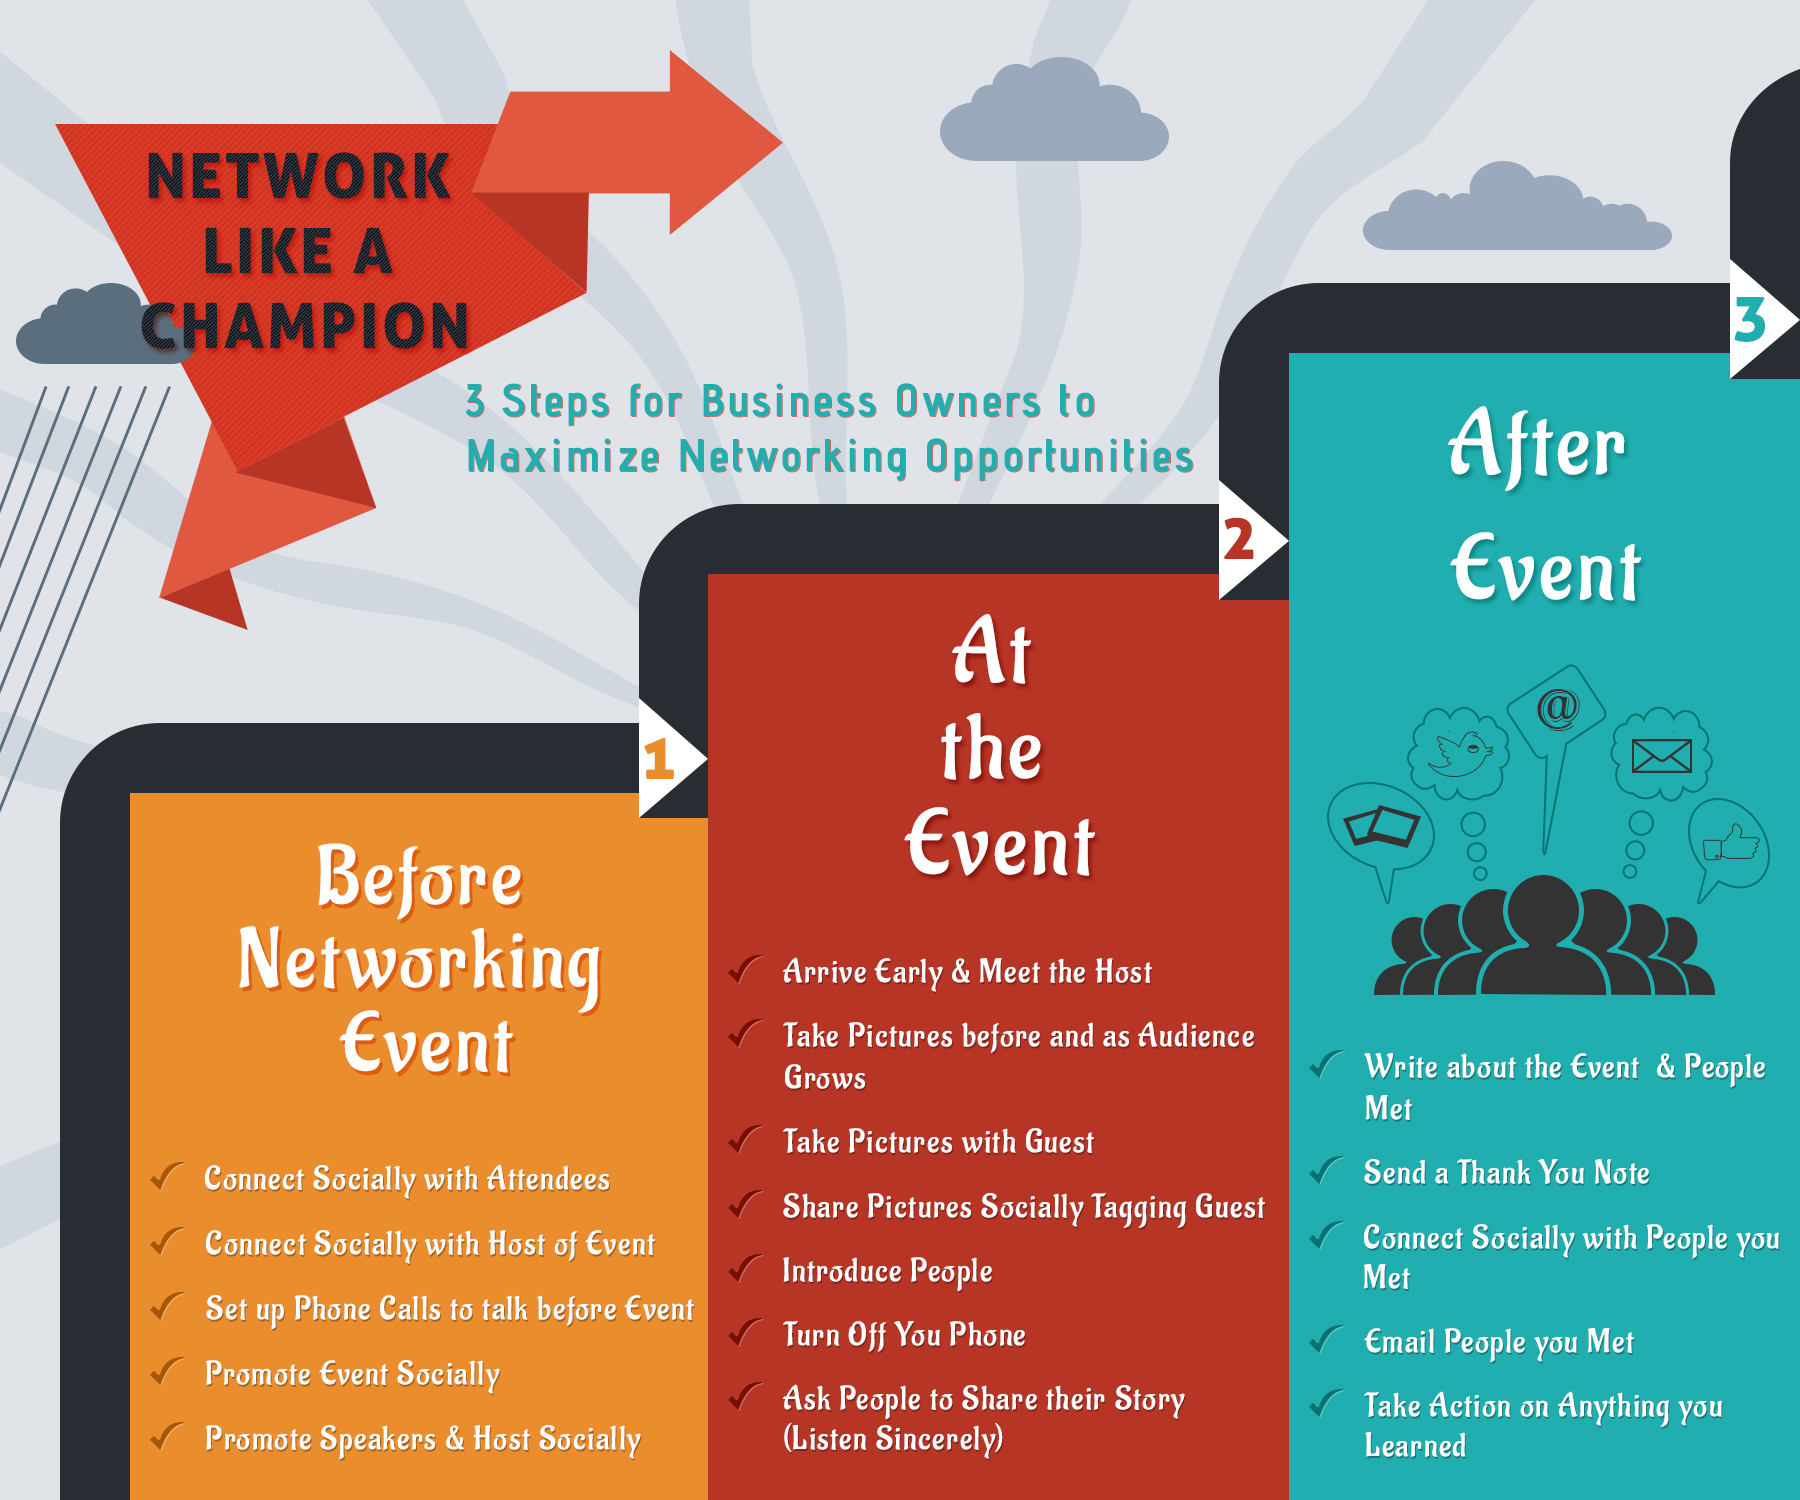 Network like a Champion